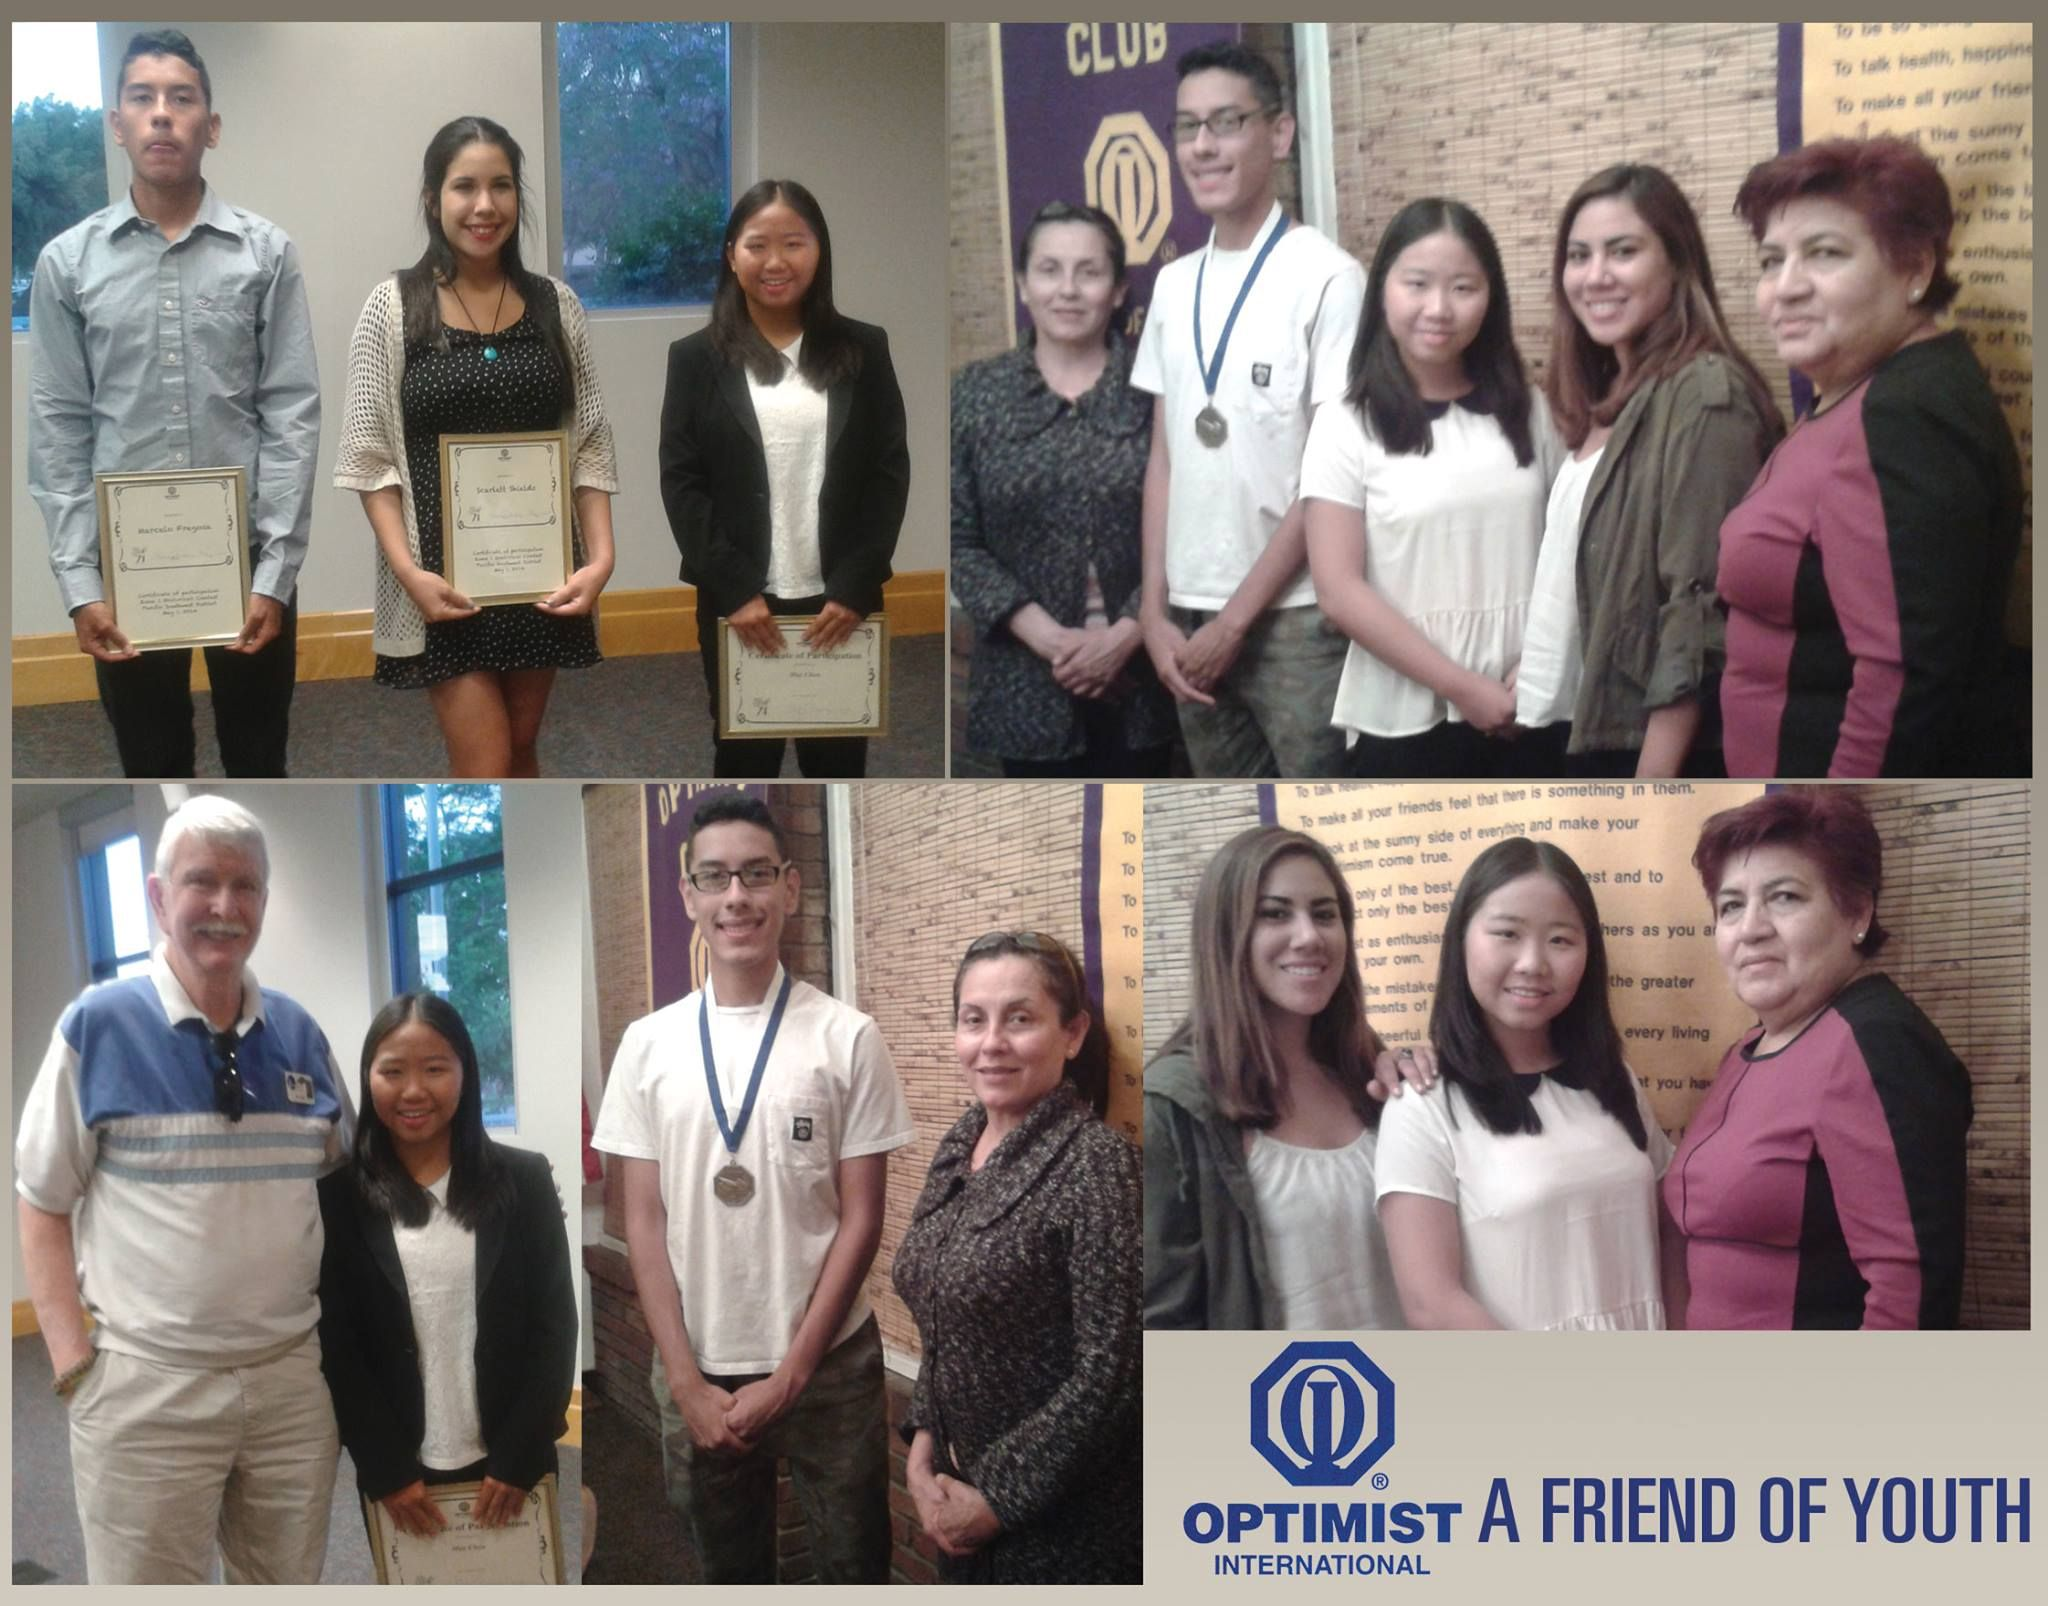 Van Nuys Airport Optimist Club - Here are pictures from the Oratorical Zone Contest with our students. May Chen, our Gold Winner headed to the next level. Marcelo Fregosa, our Silver Award Winner was designated as an alternate. Both Students are pictured here with their families and teachers who joined us for our April Dinner meeting. Congratulations to all the Students!